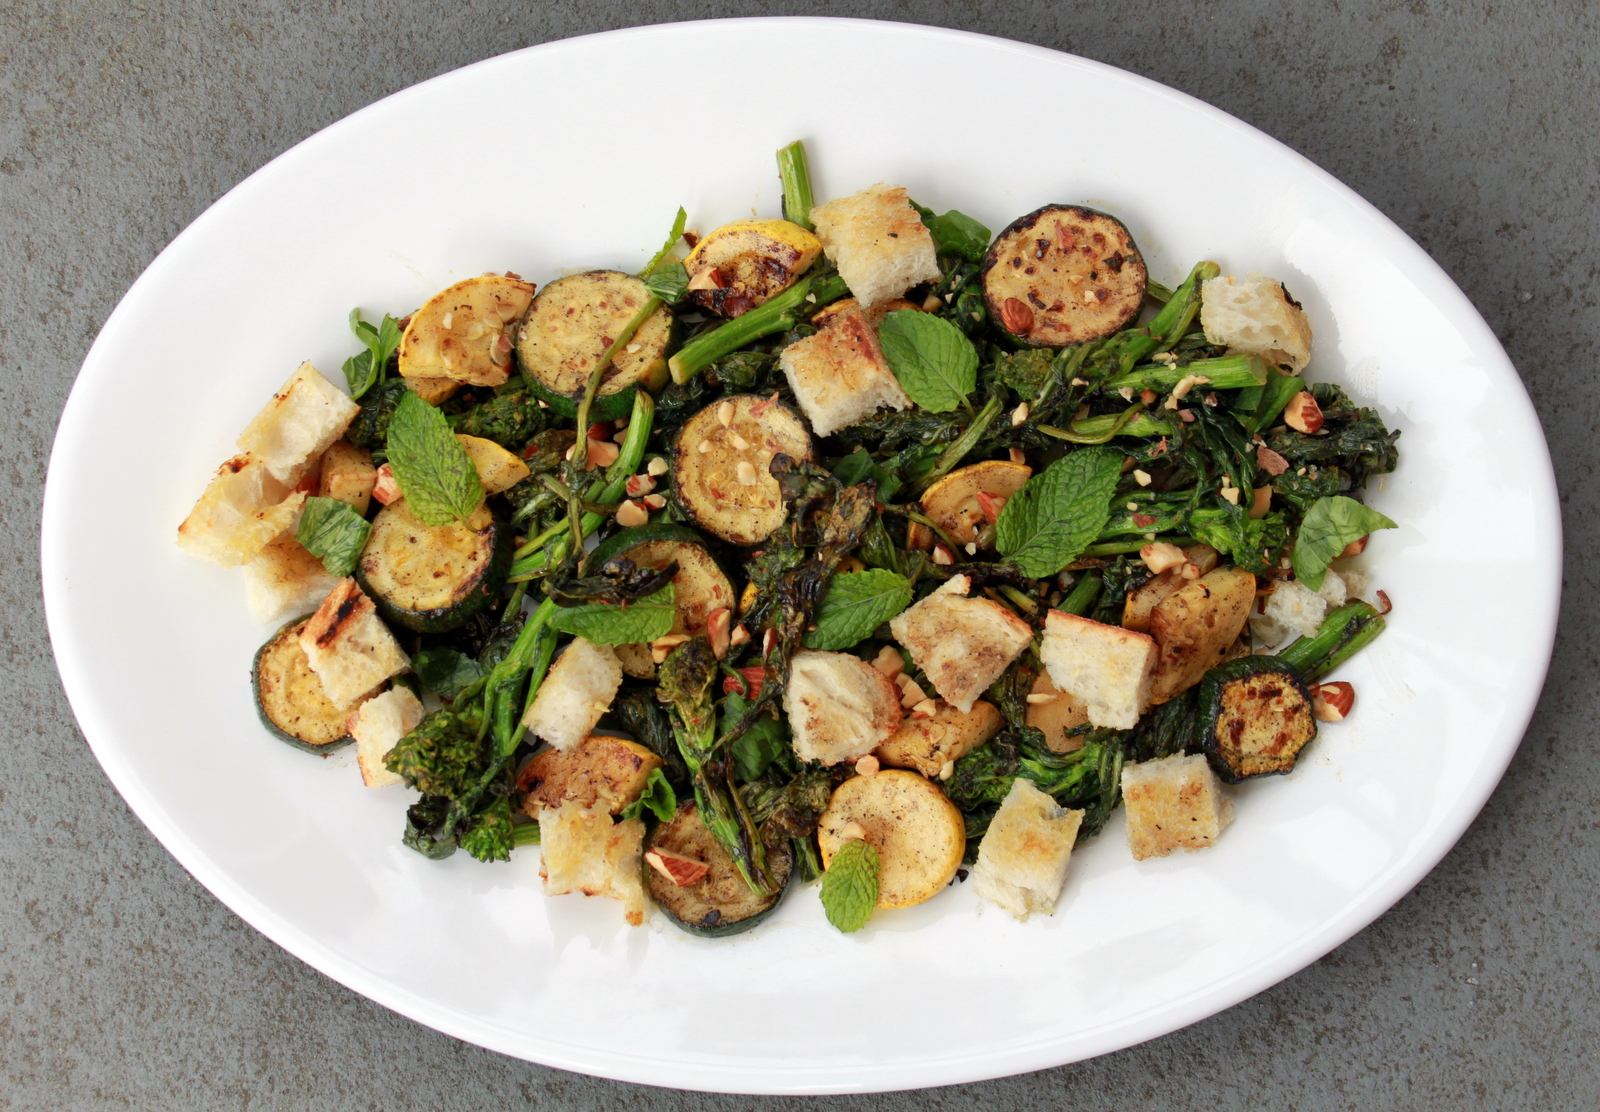 Grilled Bread Salad with Broccoli Rabe and Summer Squash